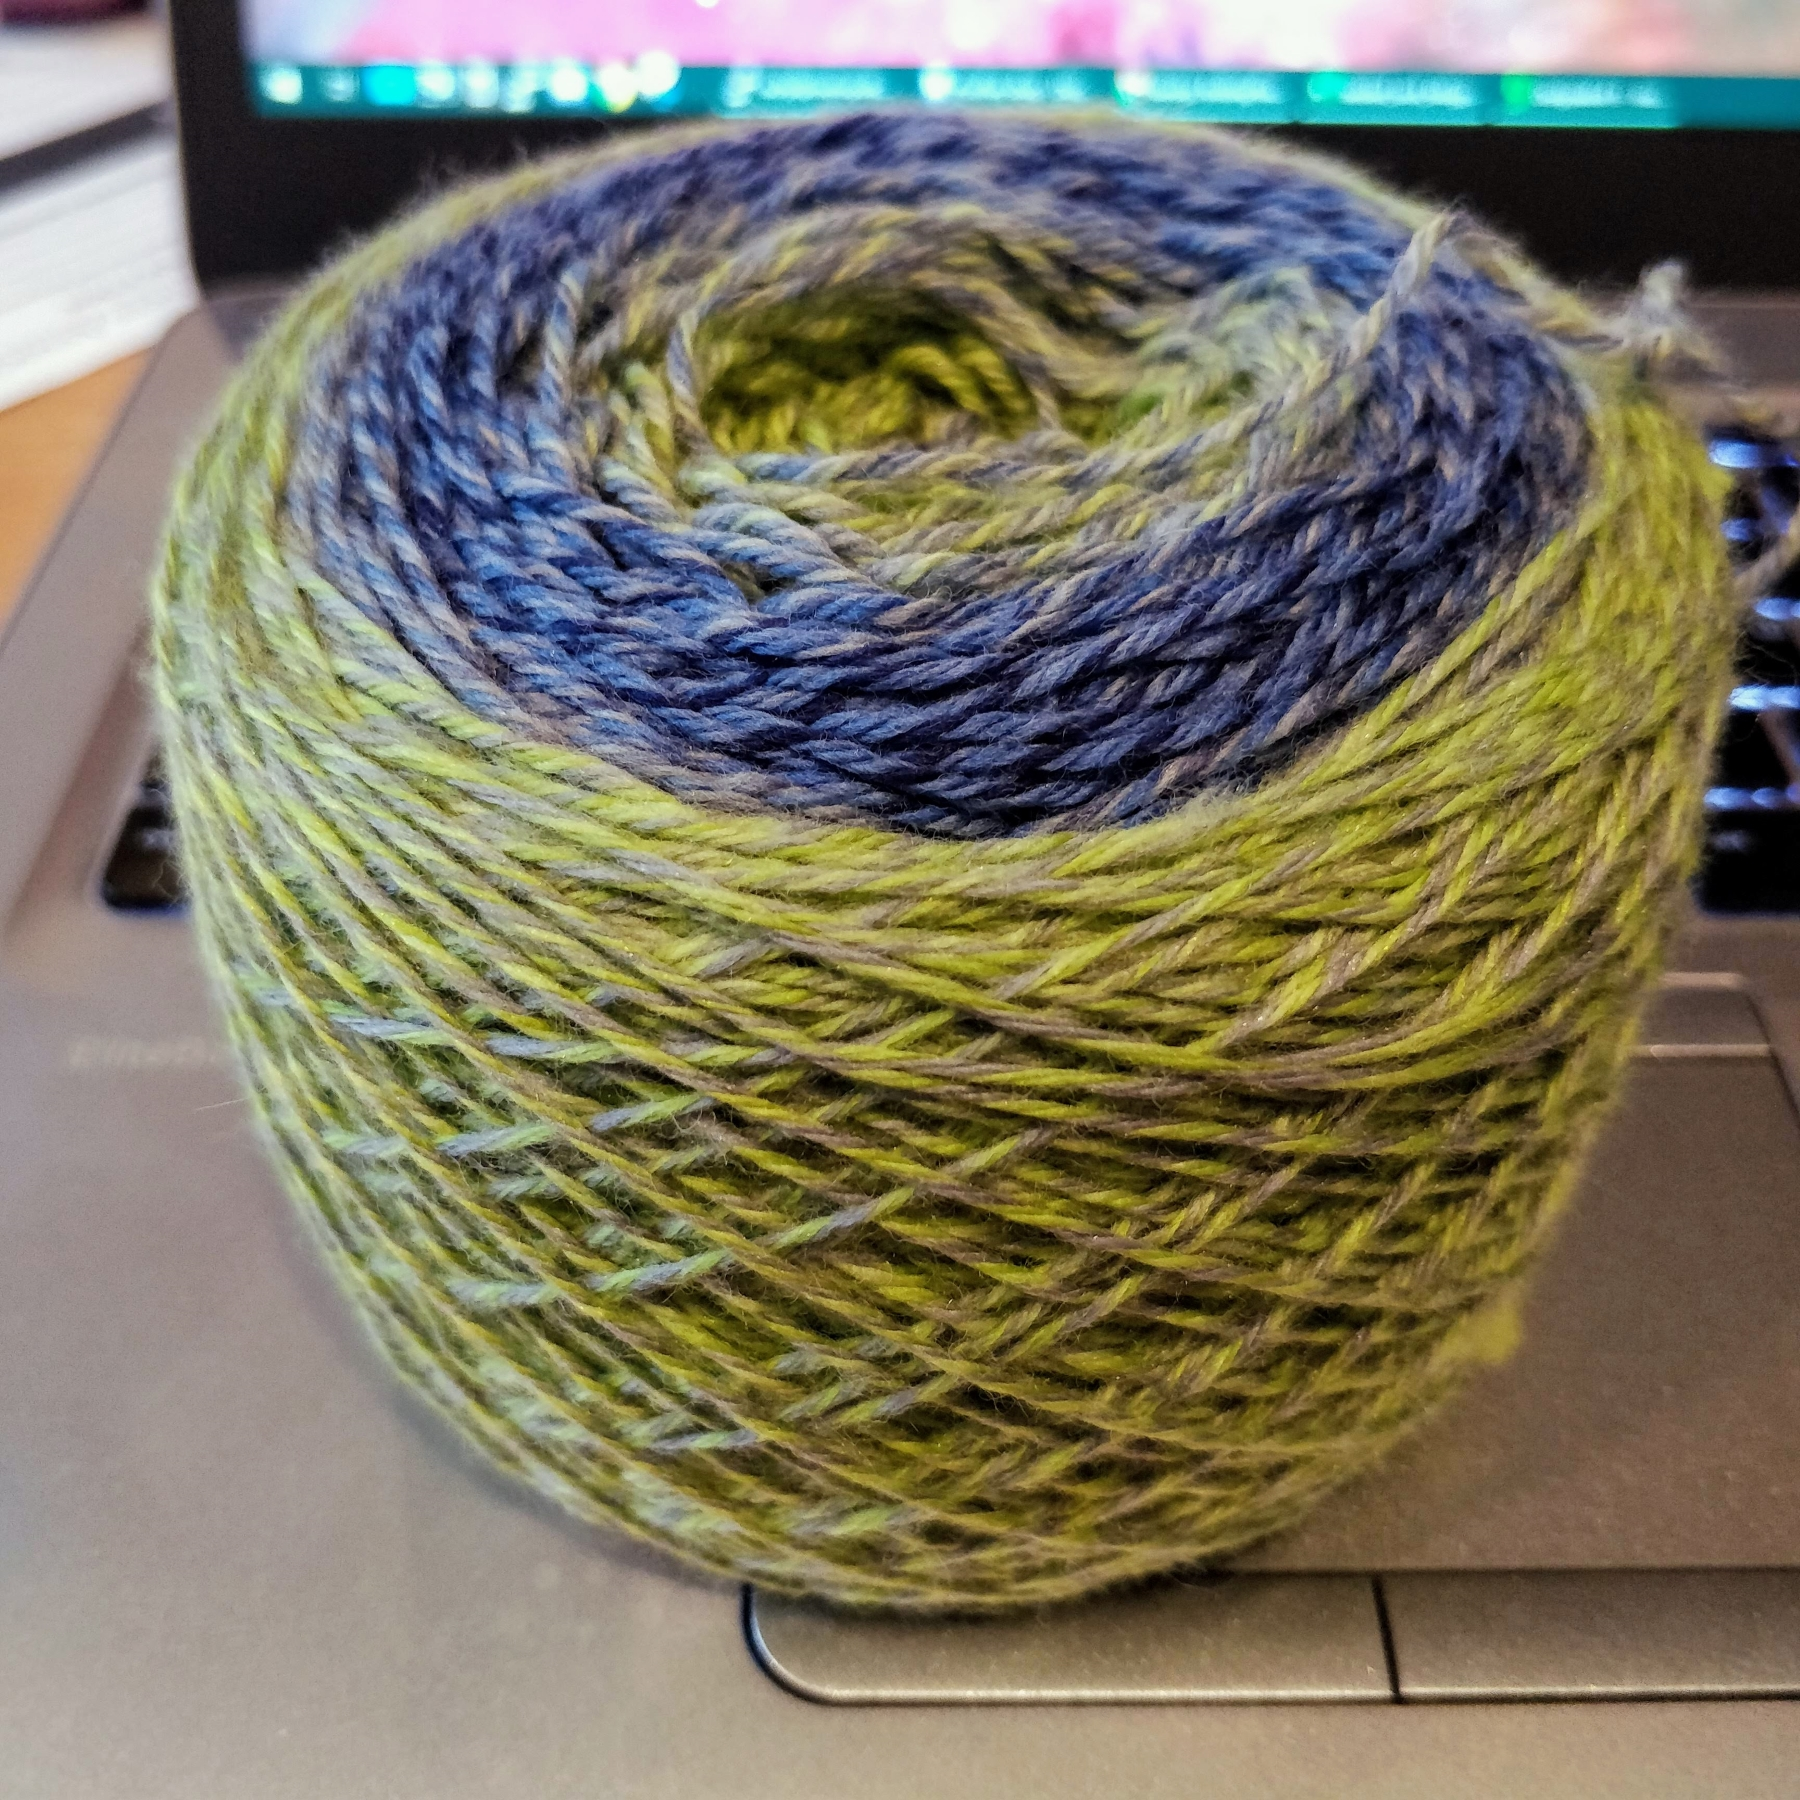 A ball of yarn with the green-blue-green gradient visible on the top edge.